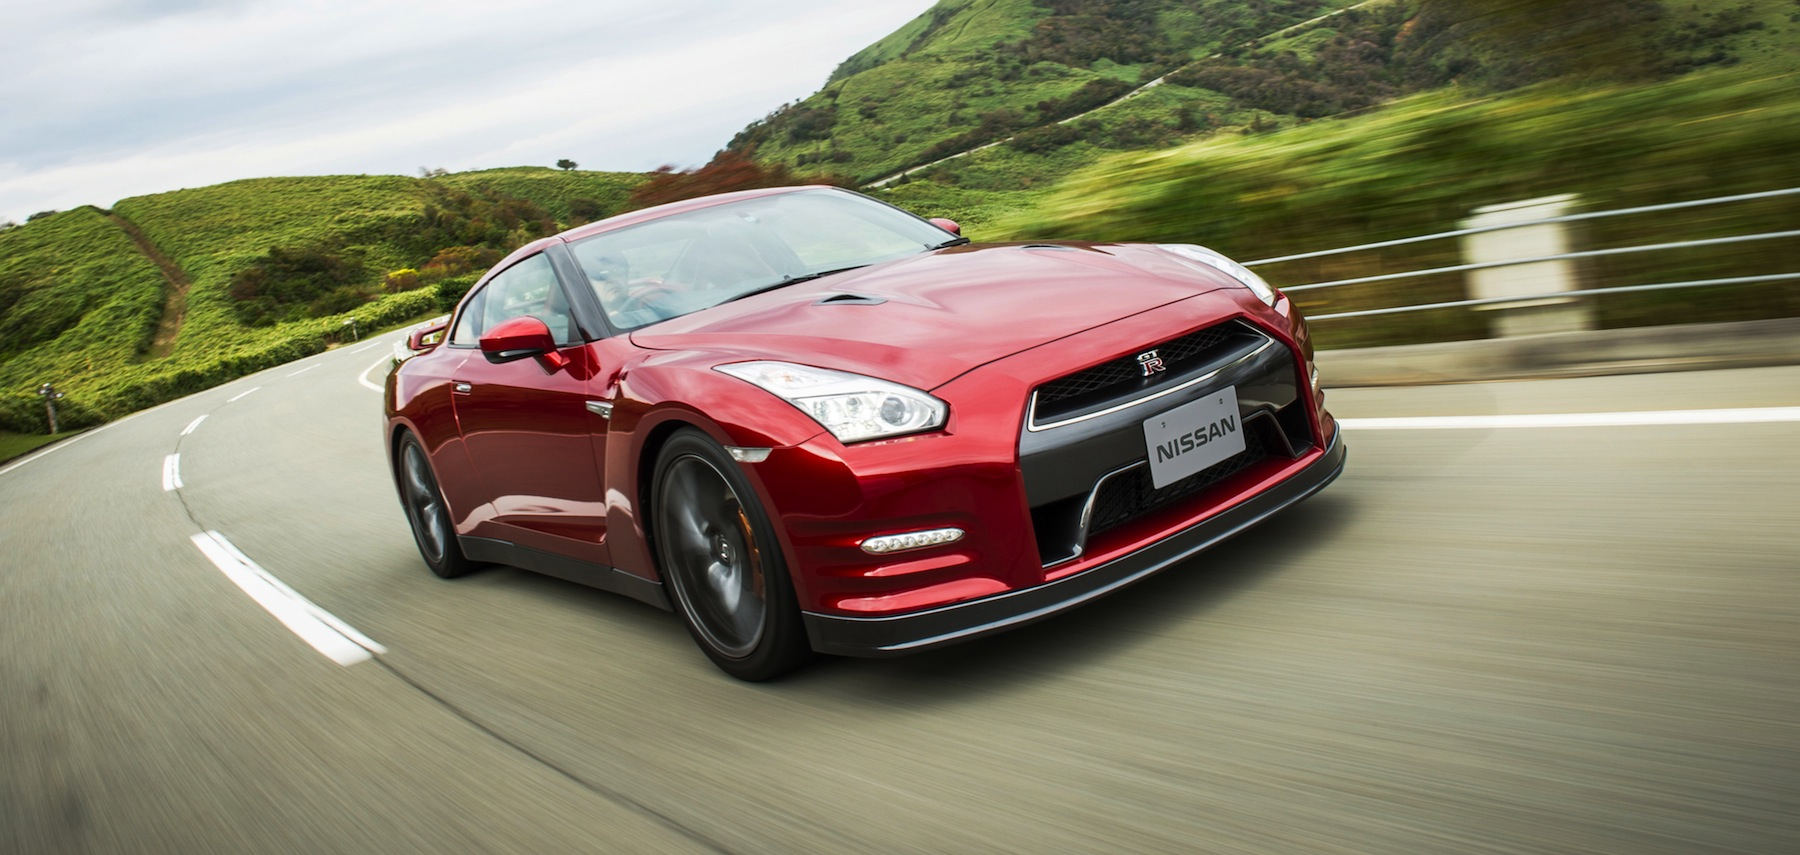 No new Nissan GT-R before 2020, Z-Car will live on - Photos (1 of 3)